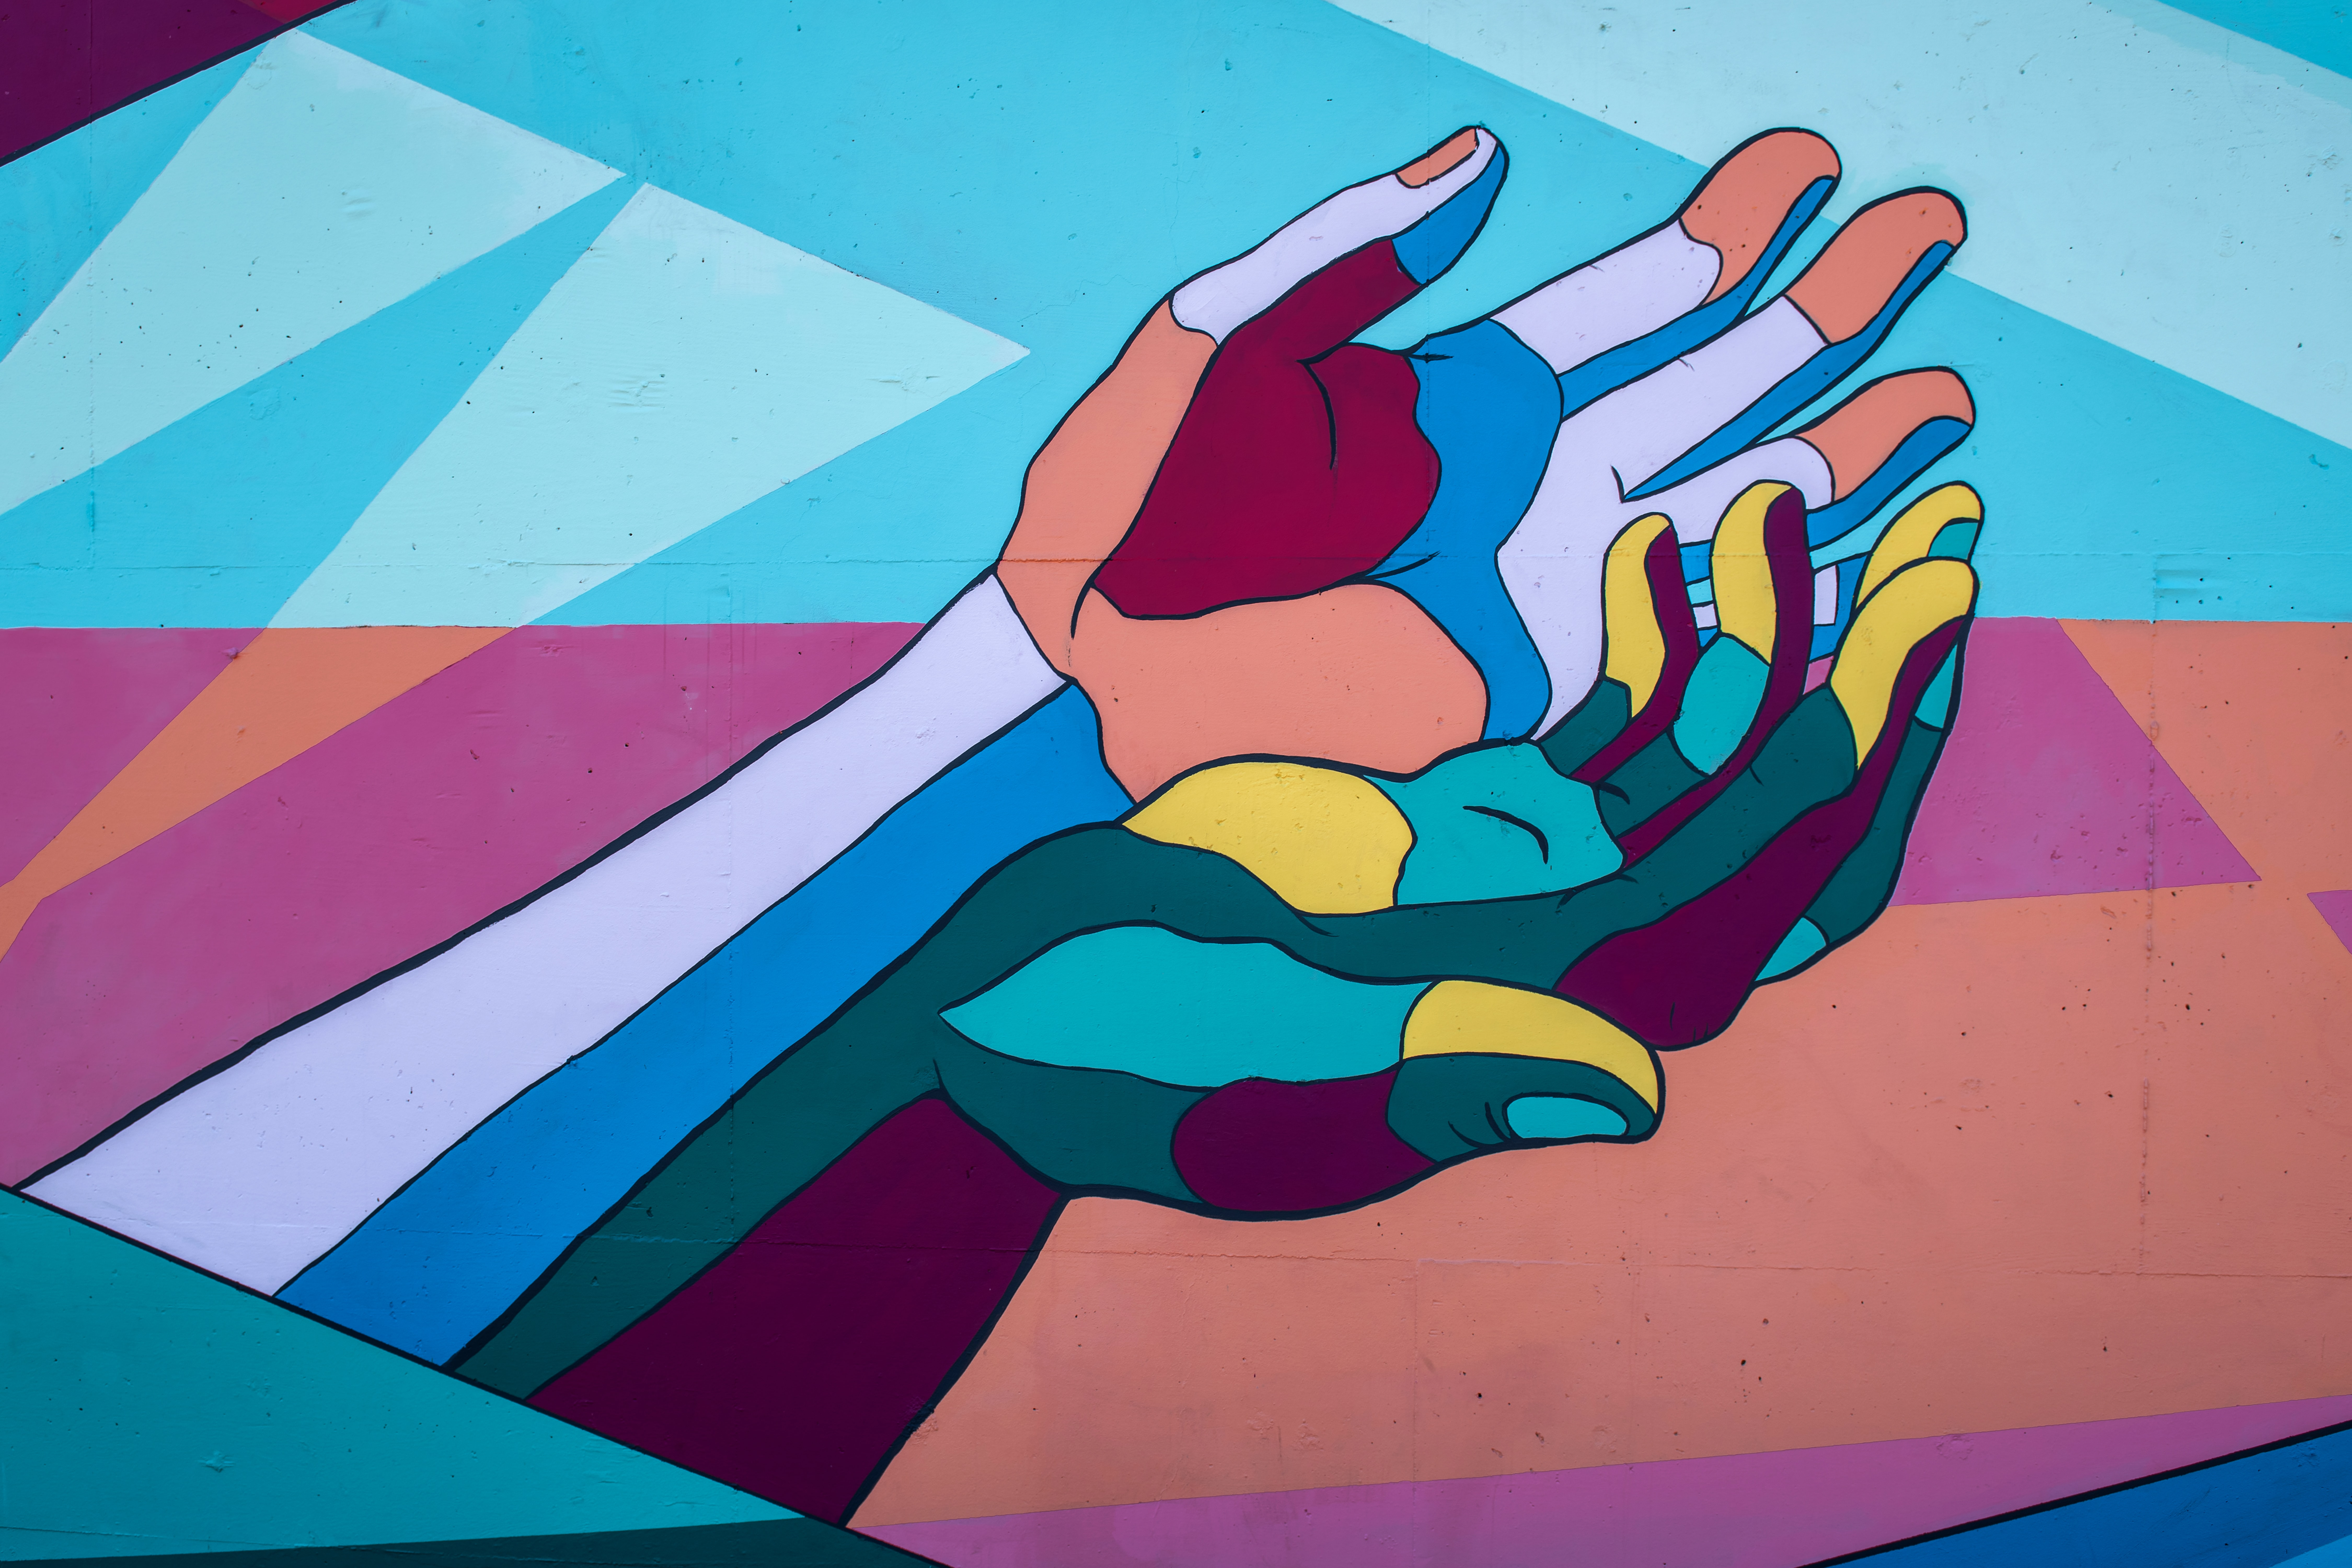 Mural depicting two colorful hands